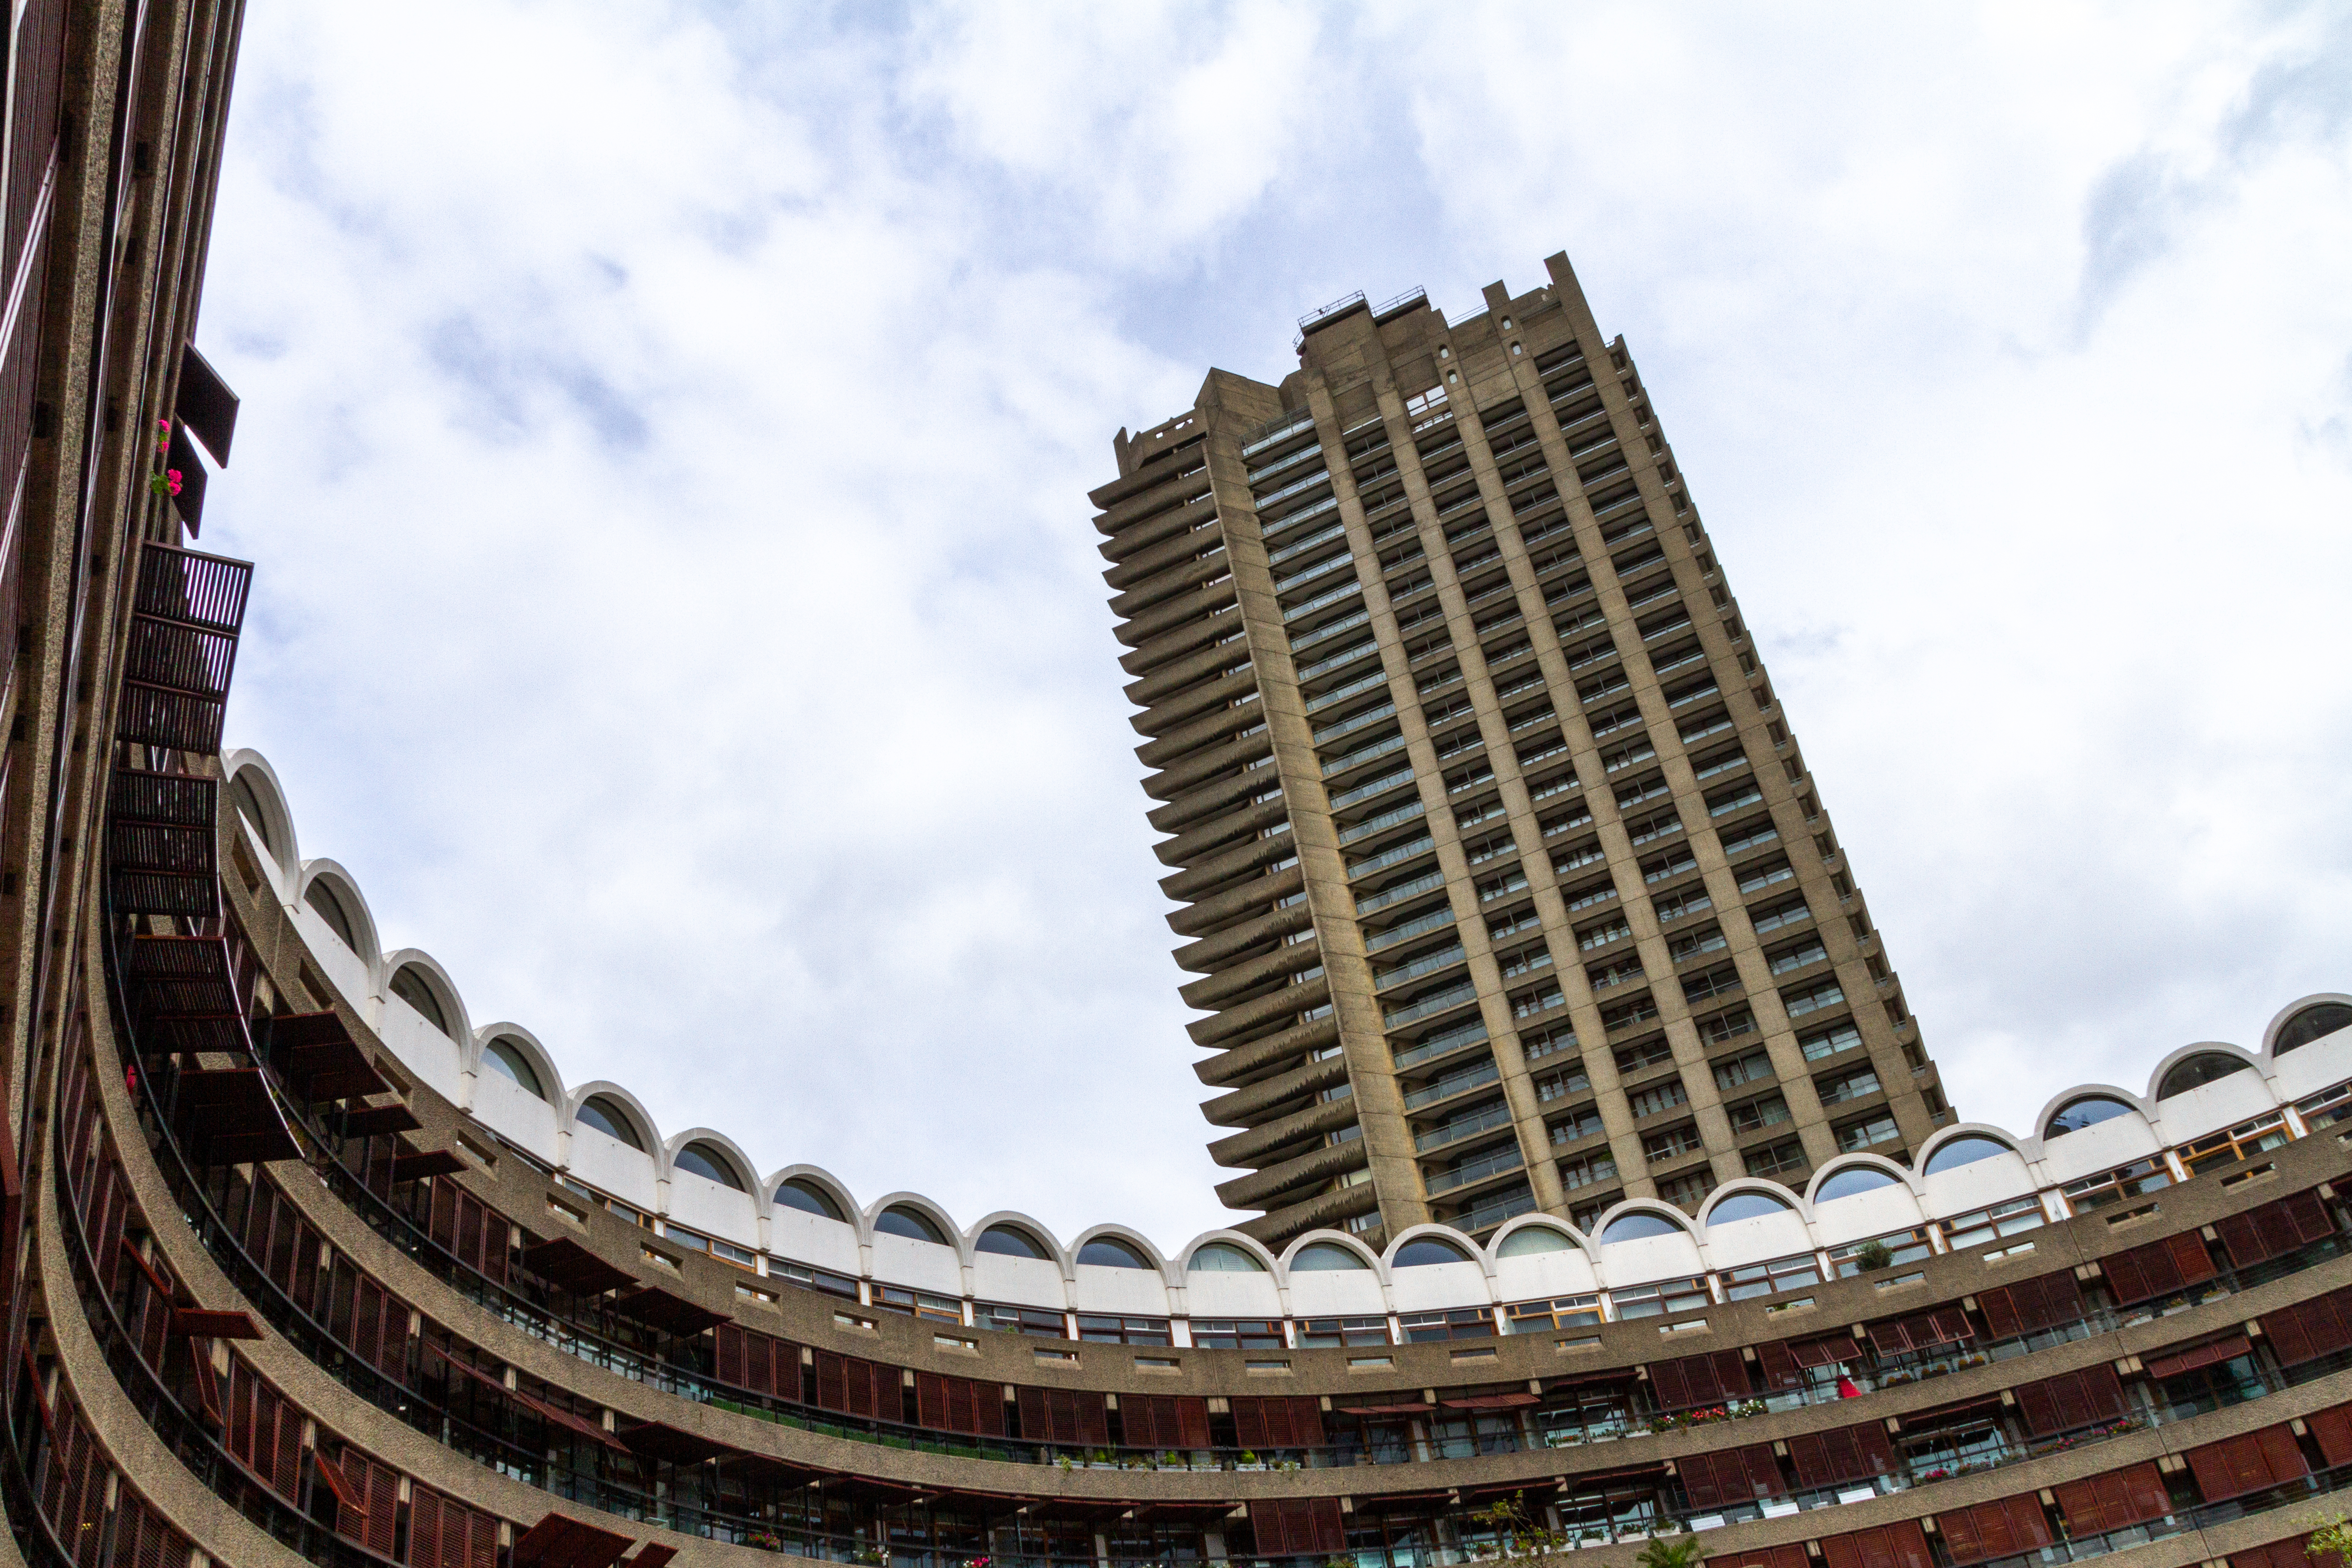 Barbican Estate residential complex in London, England.